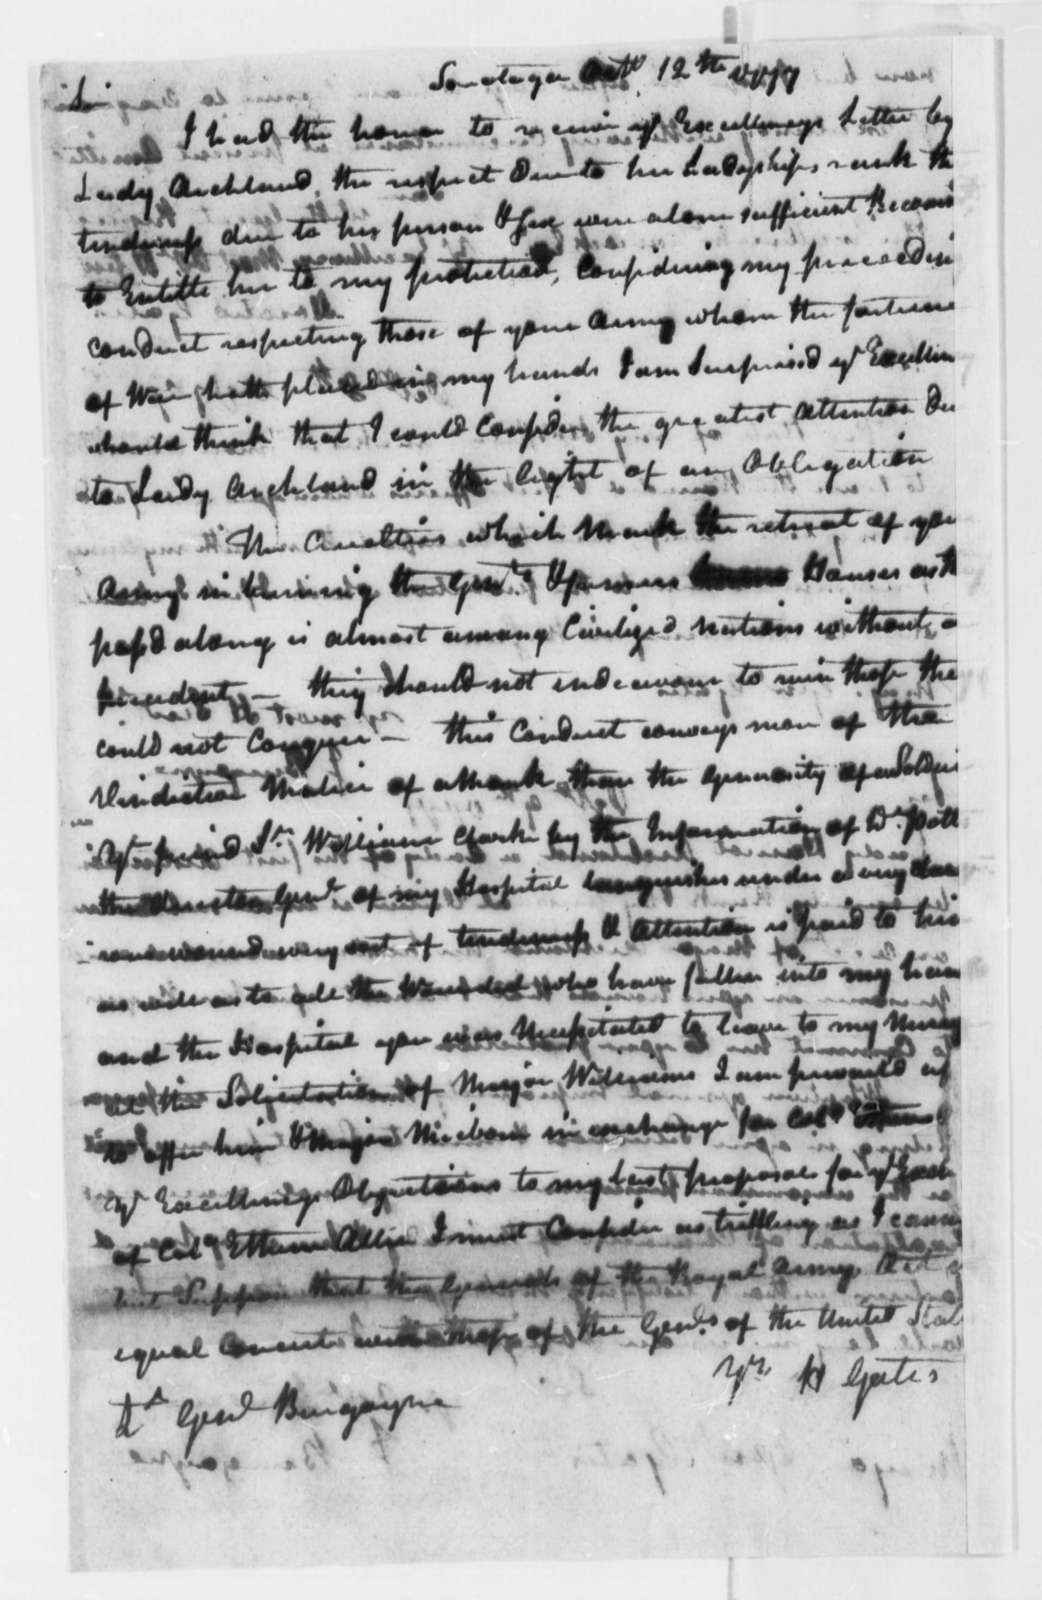 Horatio Gates to John Burgoyne, October 12, 1777, Protest at Cruelty of Retreating British Army; with note from Burgoyne